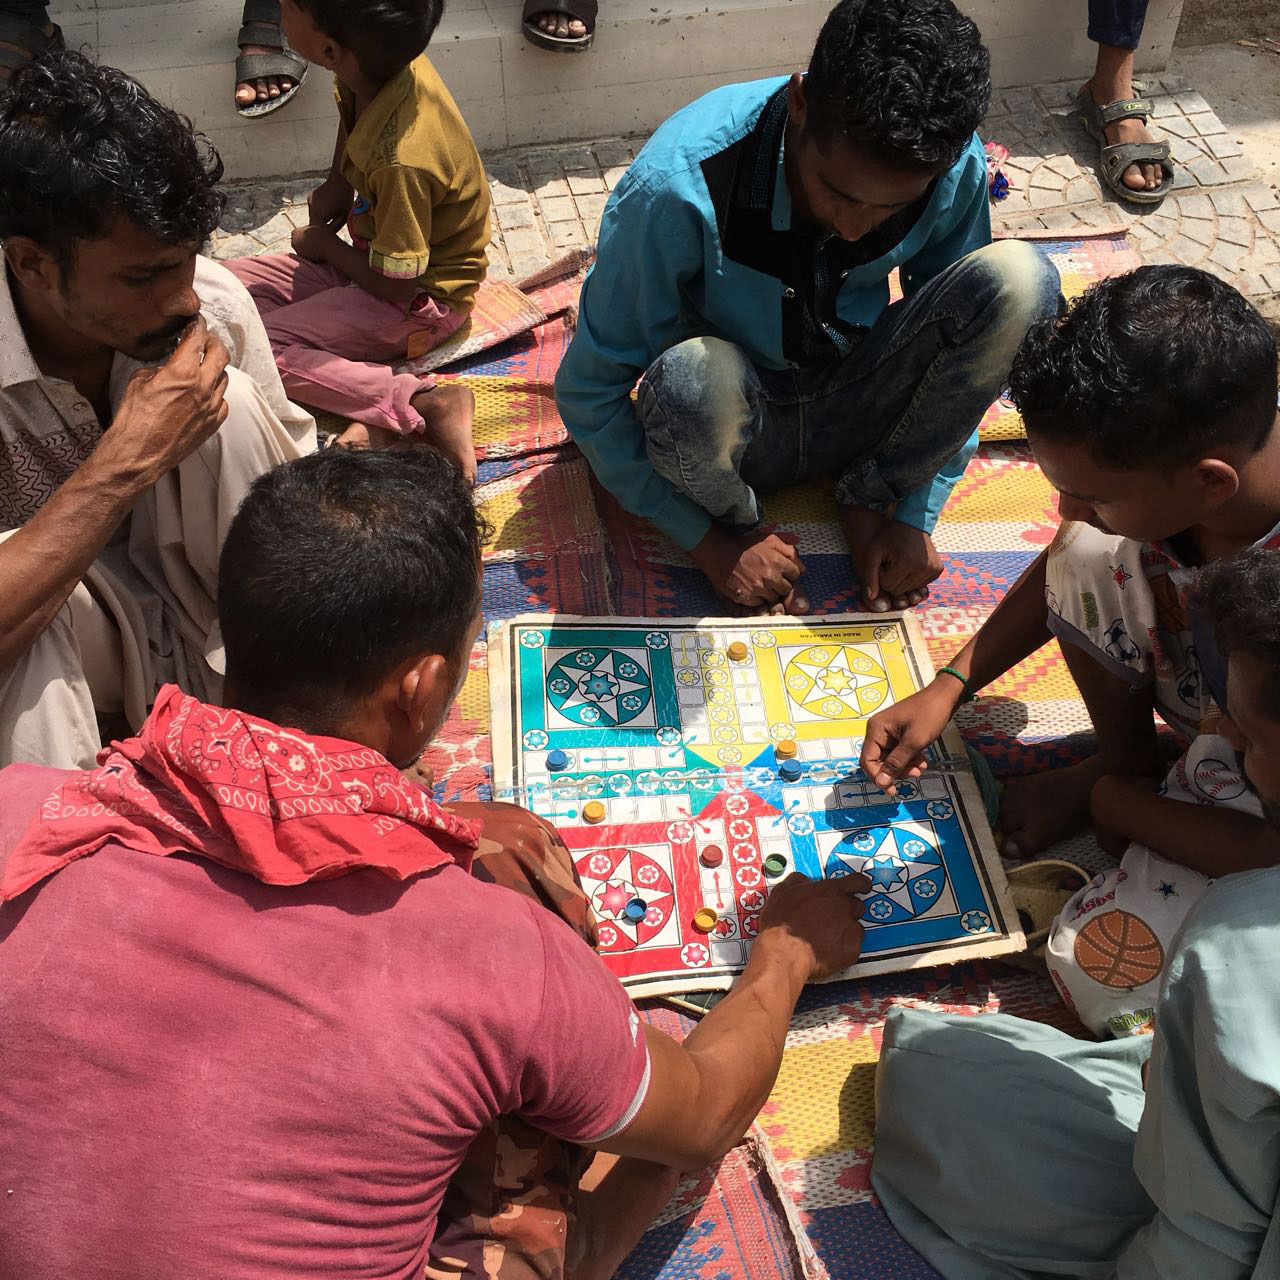 Residents of Arkanabad gather around for a game of Ludo.